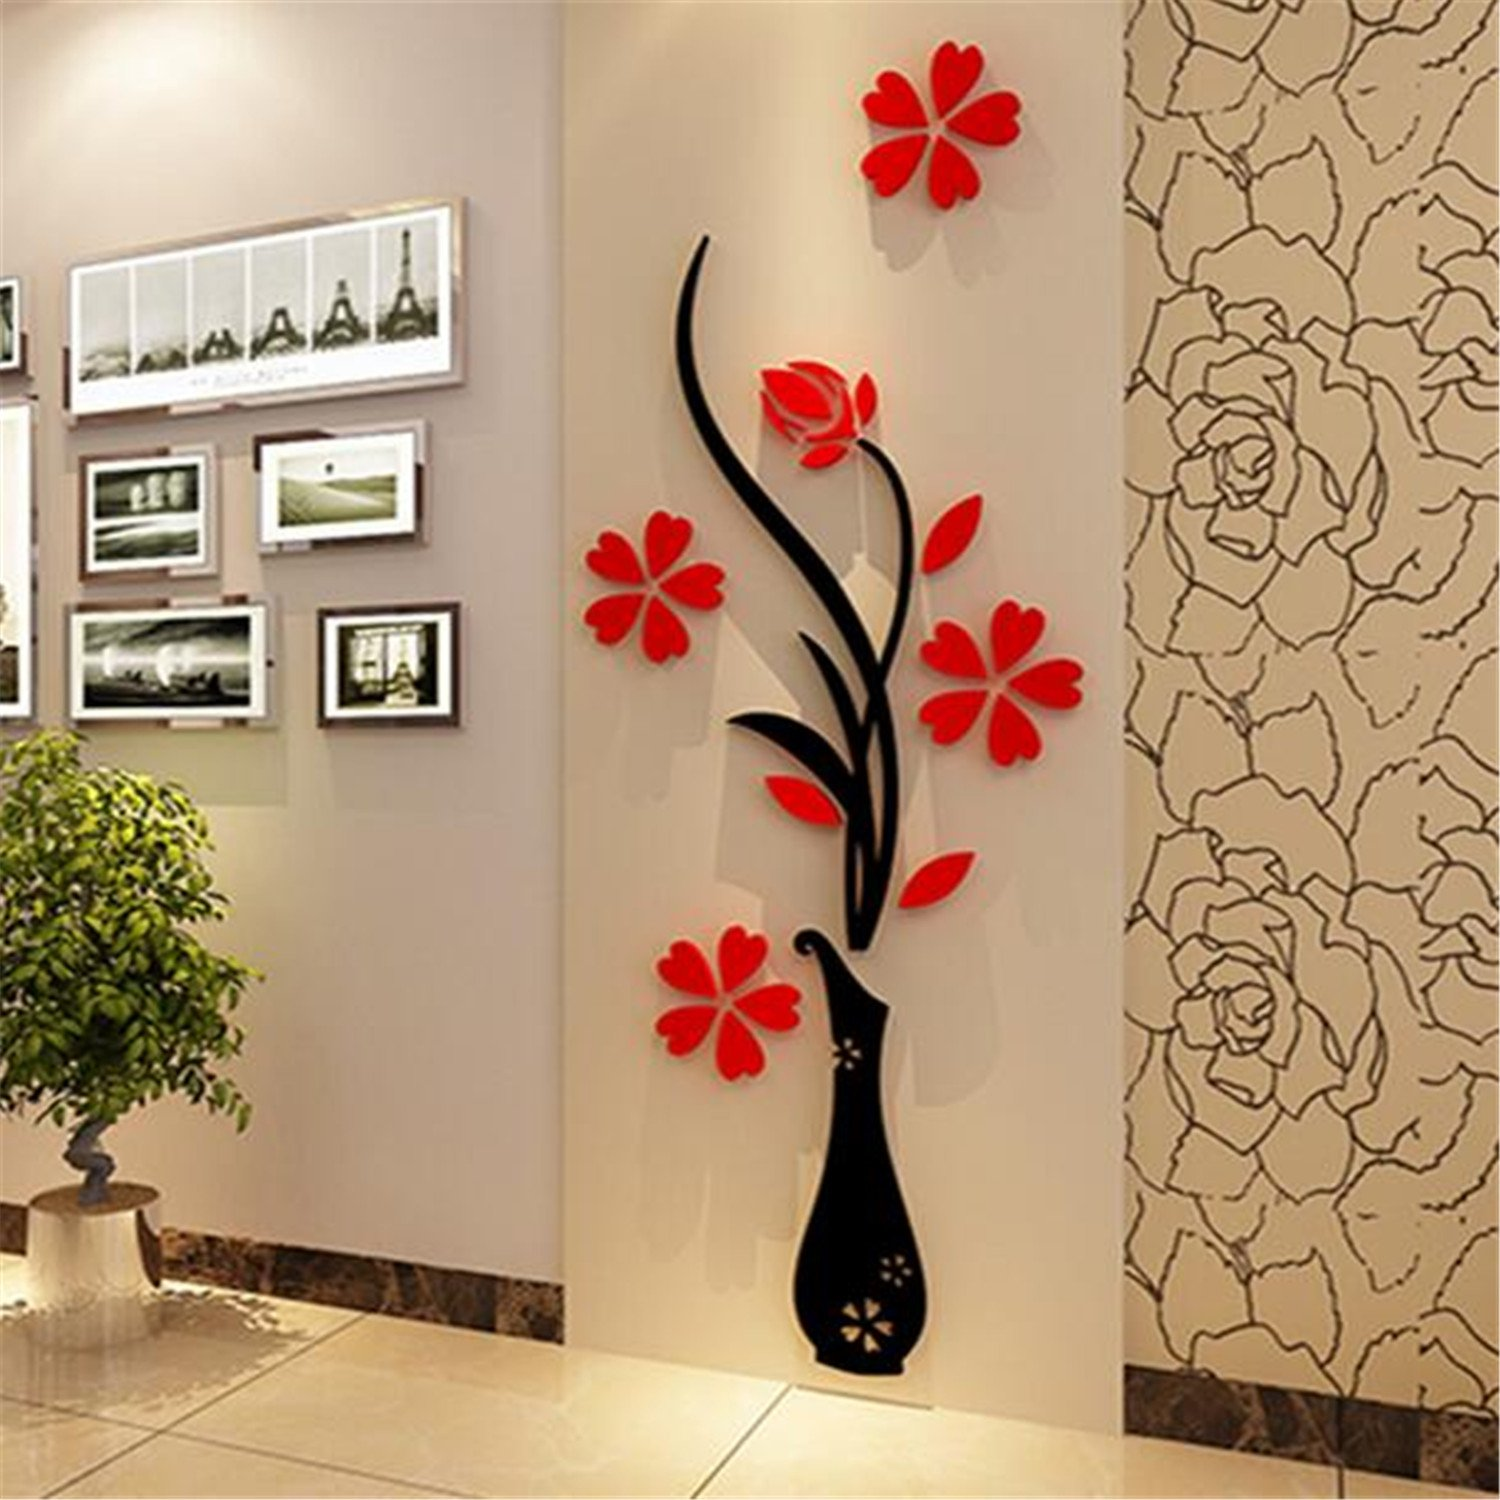 Amazon home accessories 3d wall decoration wall hangings amazon home accessories 3d wall decoration wall hangings creative ceramic flower wall murals removable wall decals home kitchen amipublicfo Image collections